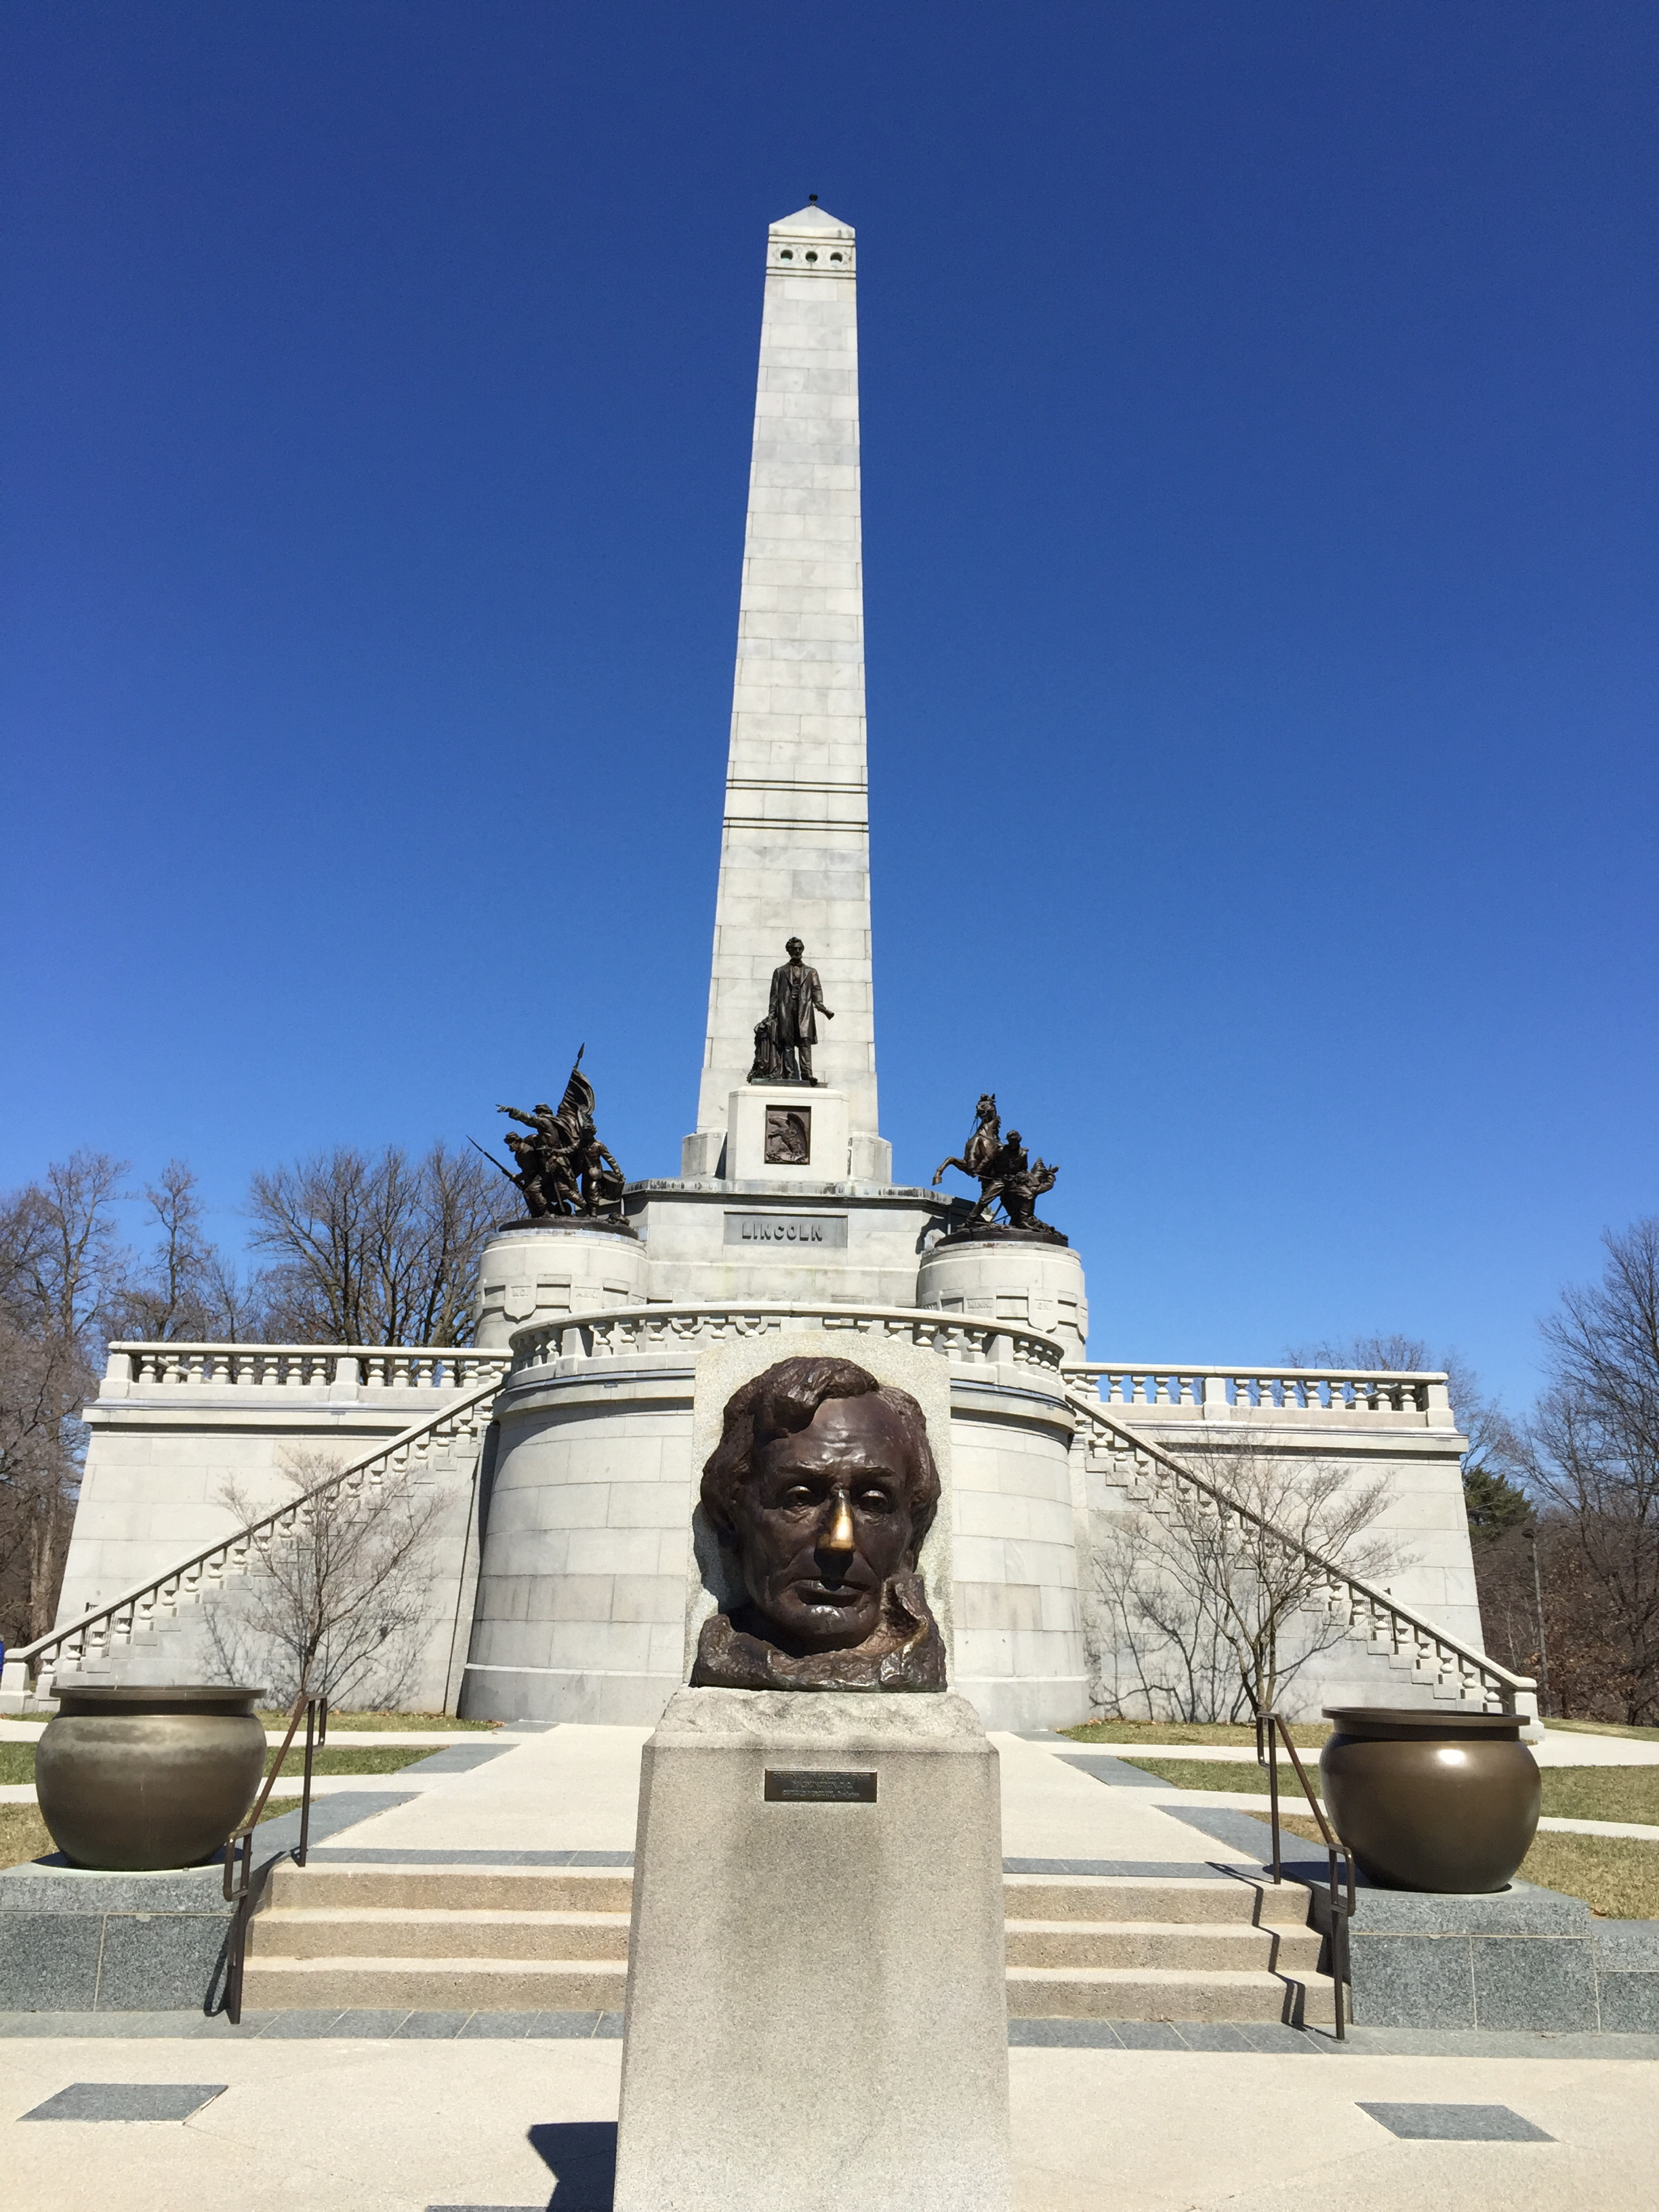 Tomb monument in background, bust of Abraham Lincoln in foreground